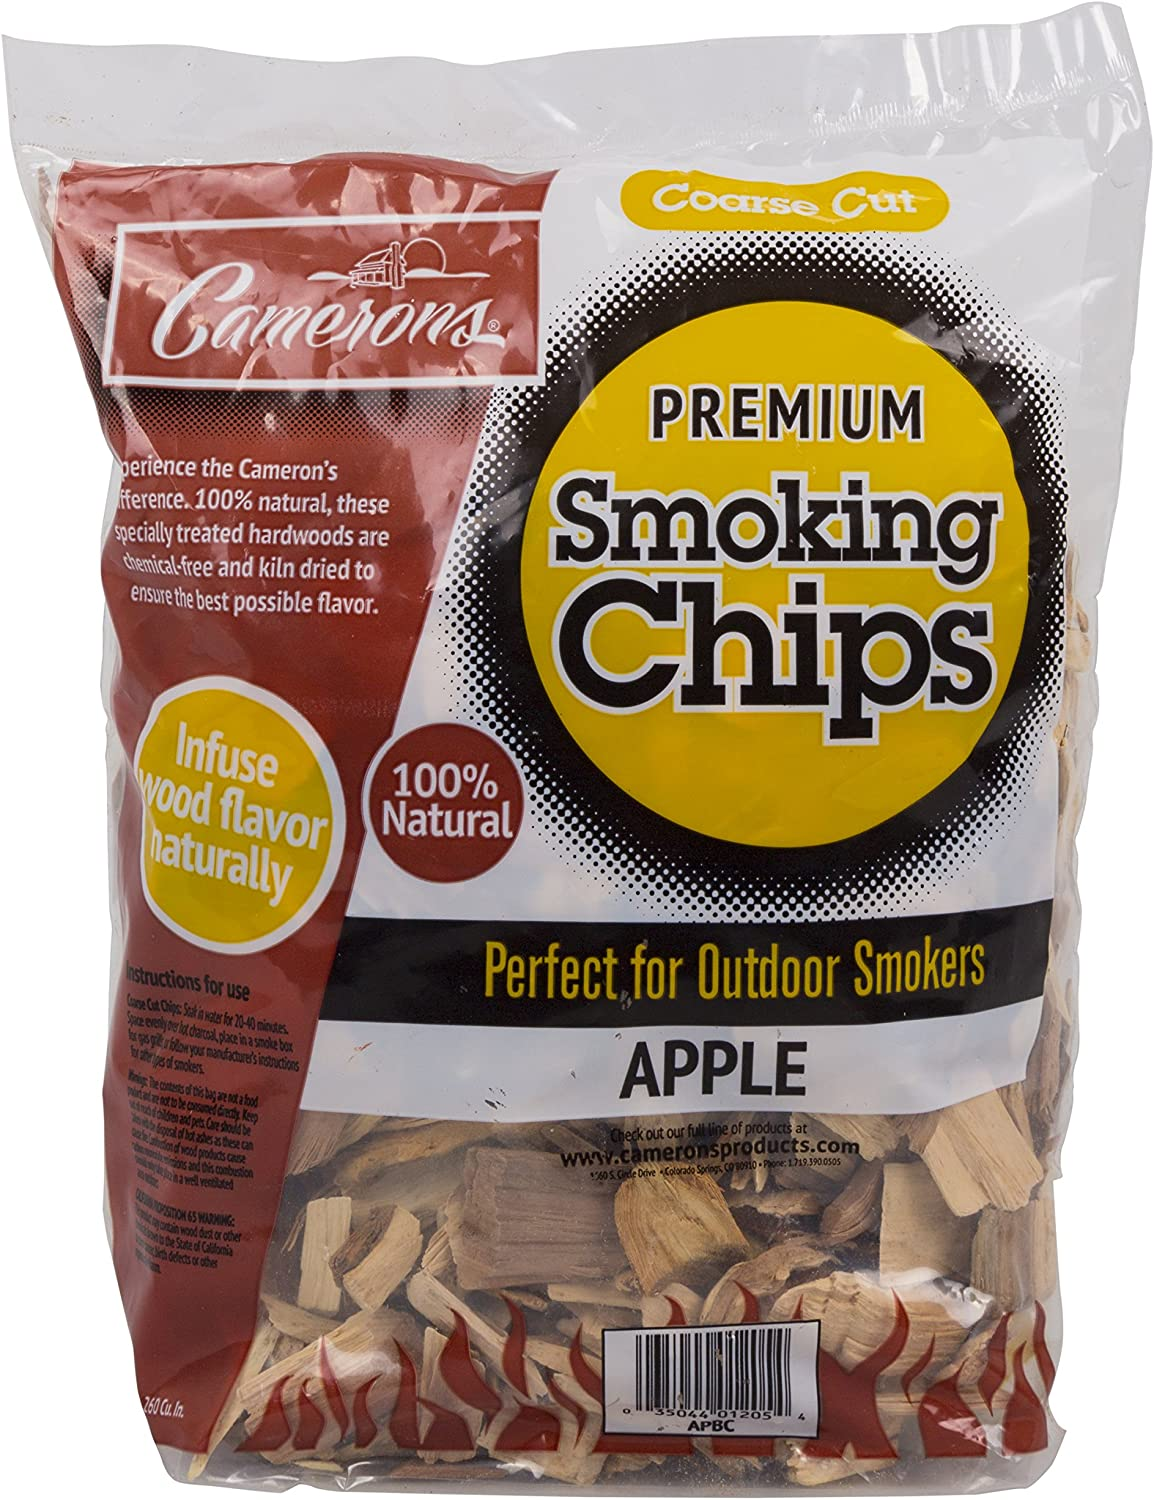 Smoking Chips - (Hickory) - 260 cu. in. (0.004m³) - Kiln Dried, Natural Coarse Wood Smoker Chunks - 2 Pound Bag Barbecue Chips : Smoker Chips : Garden & Outdoor